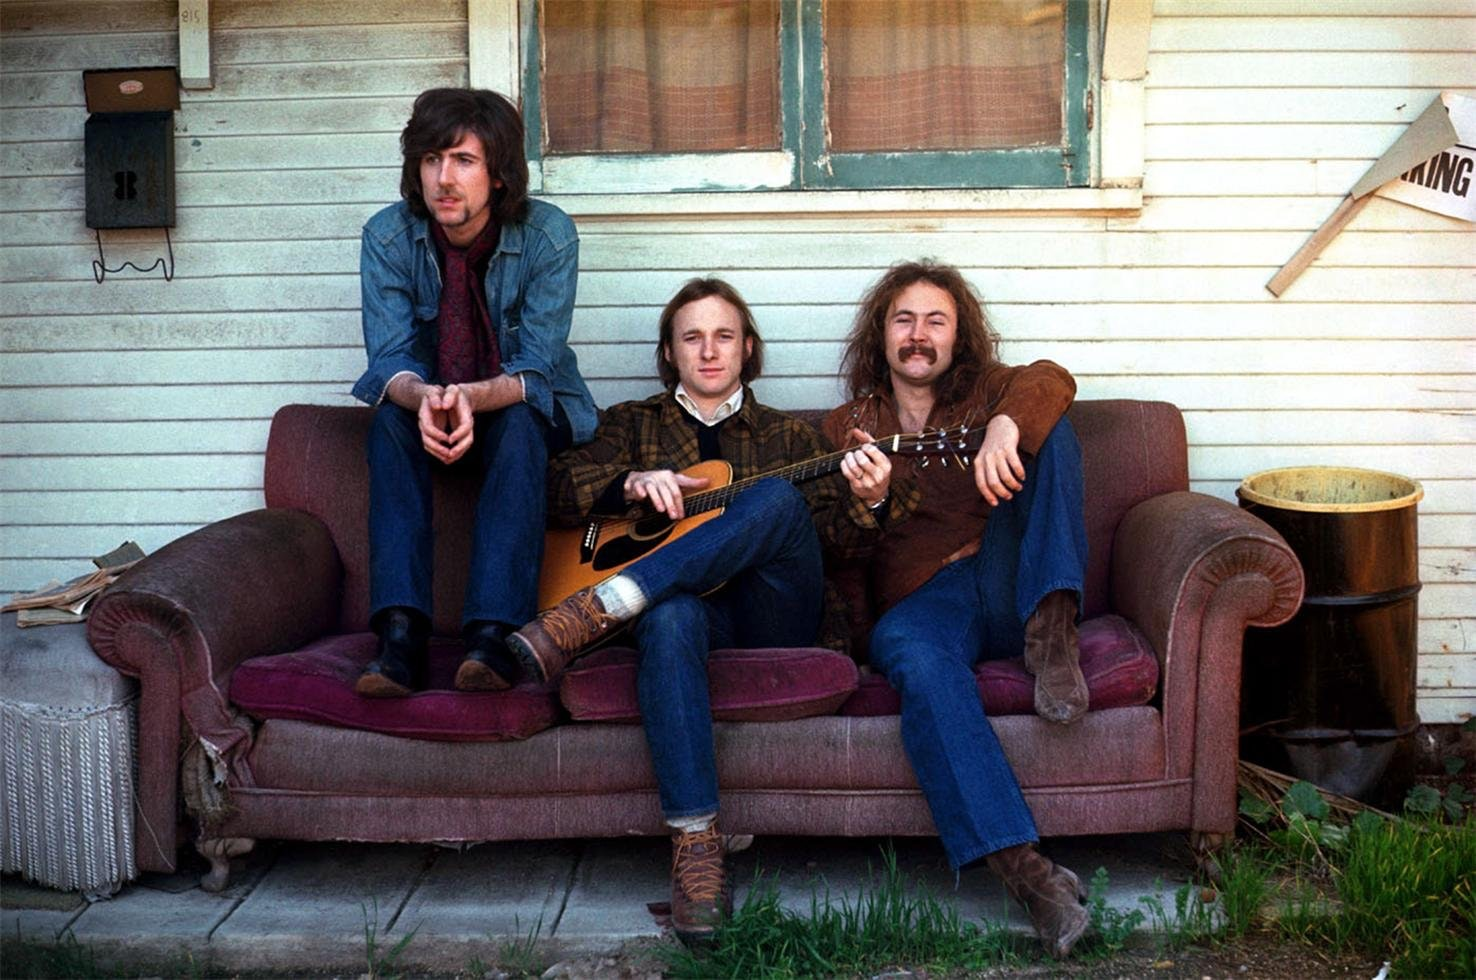 The 10 Best Crosby Stills And Or Nash Albums To Own On